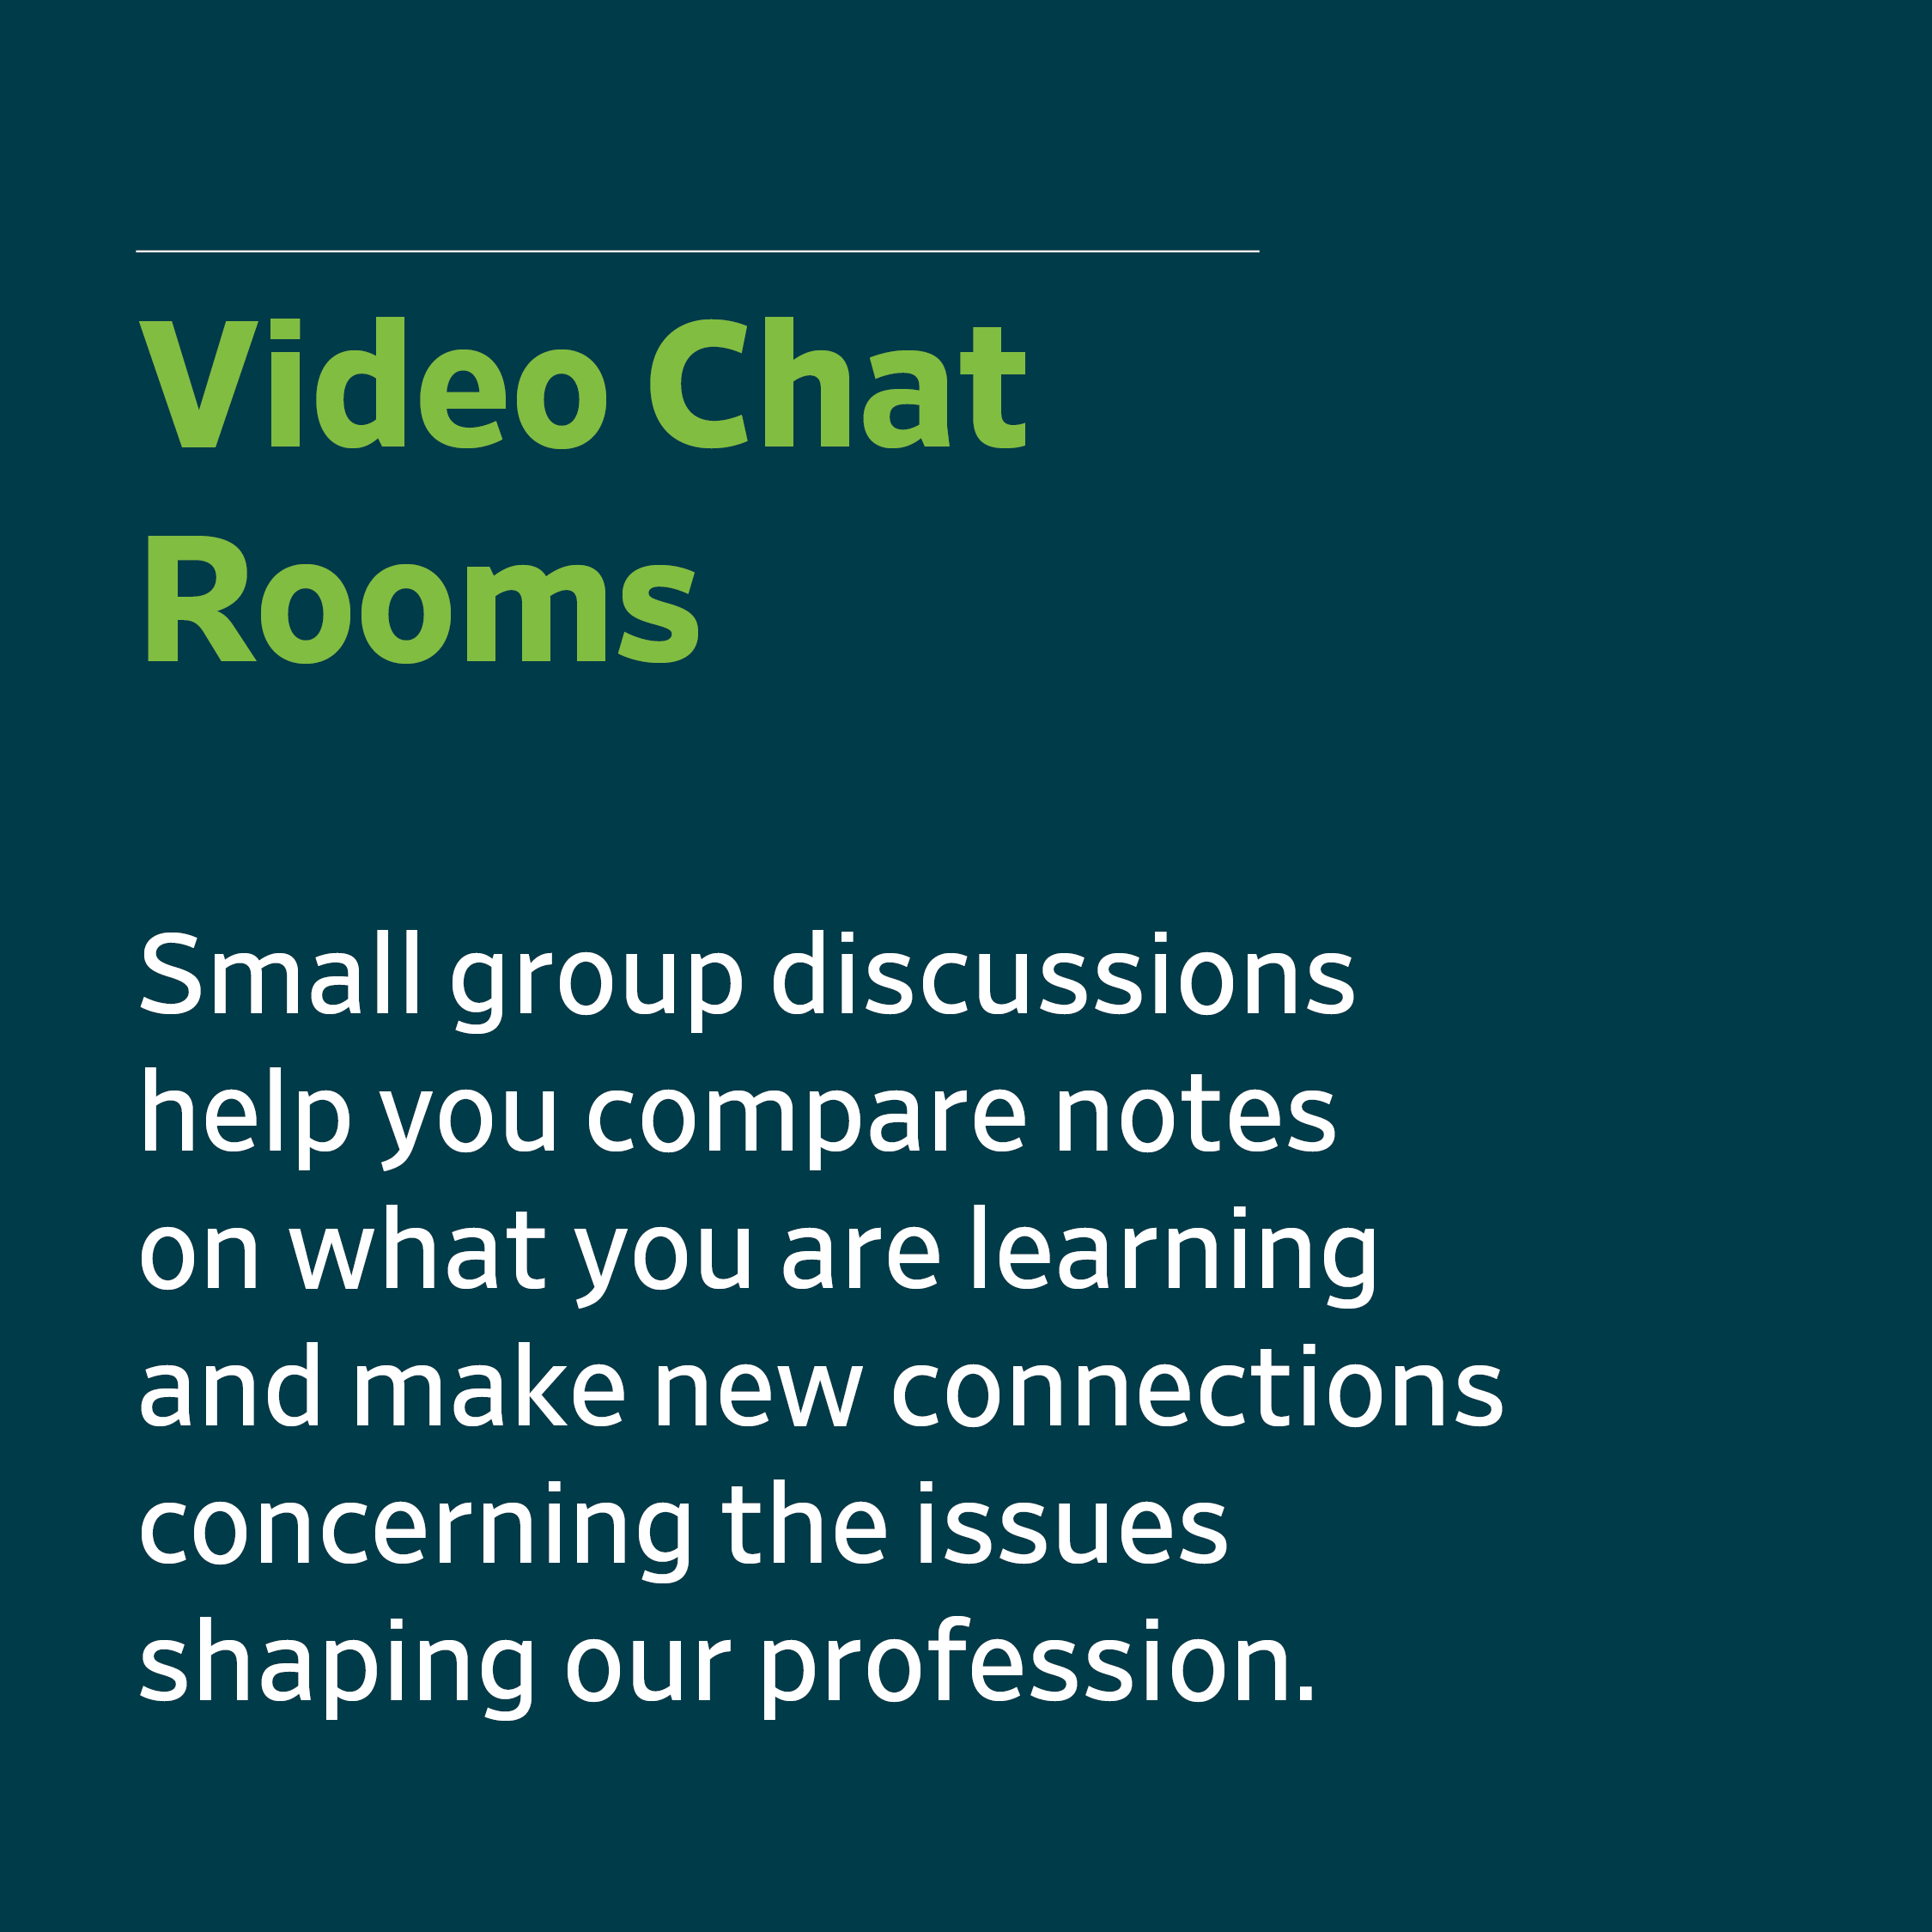 Video chat rooms - Small group discussions help you compare notes on what you are learning and make new connections concerning the issues shaping our profession.